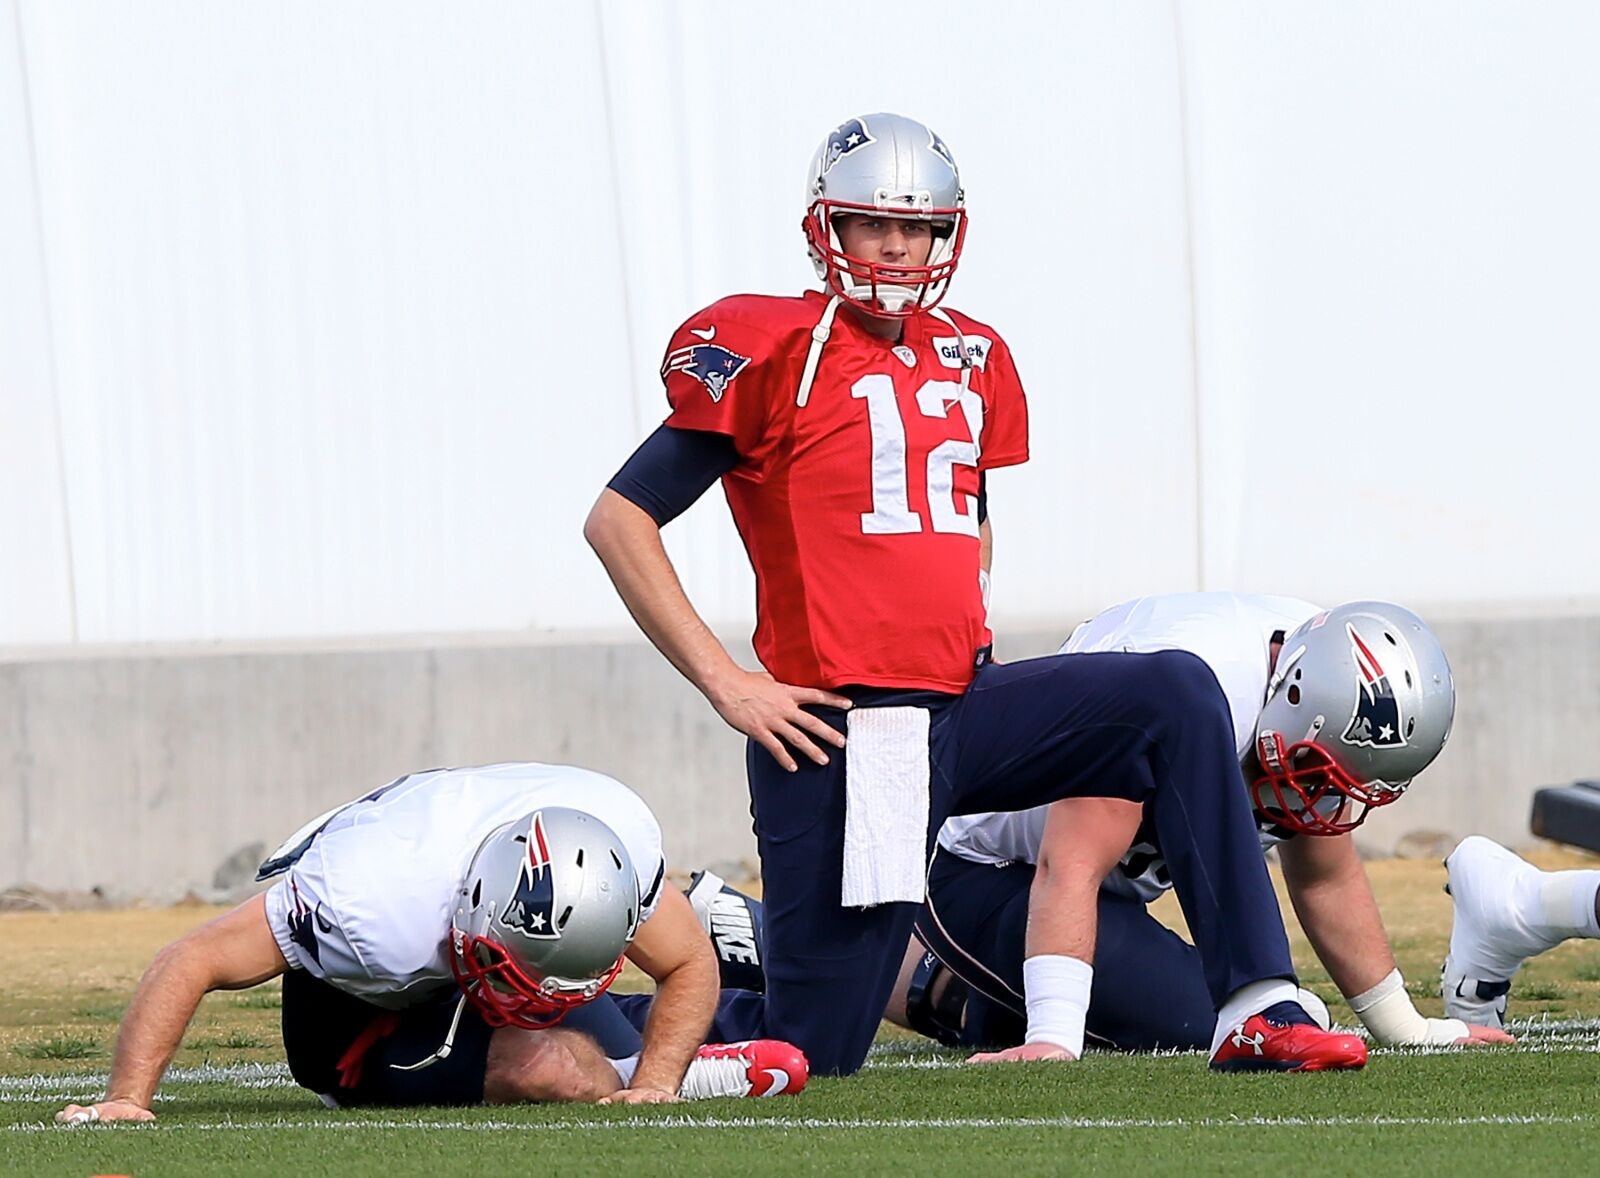 Tom Brady talks about bulking up and his future in football